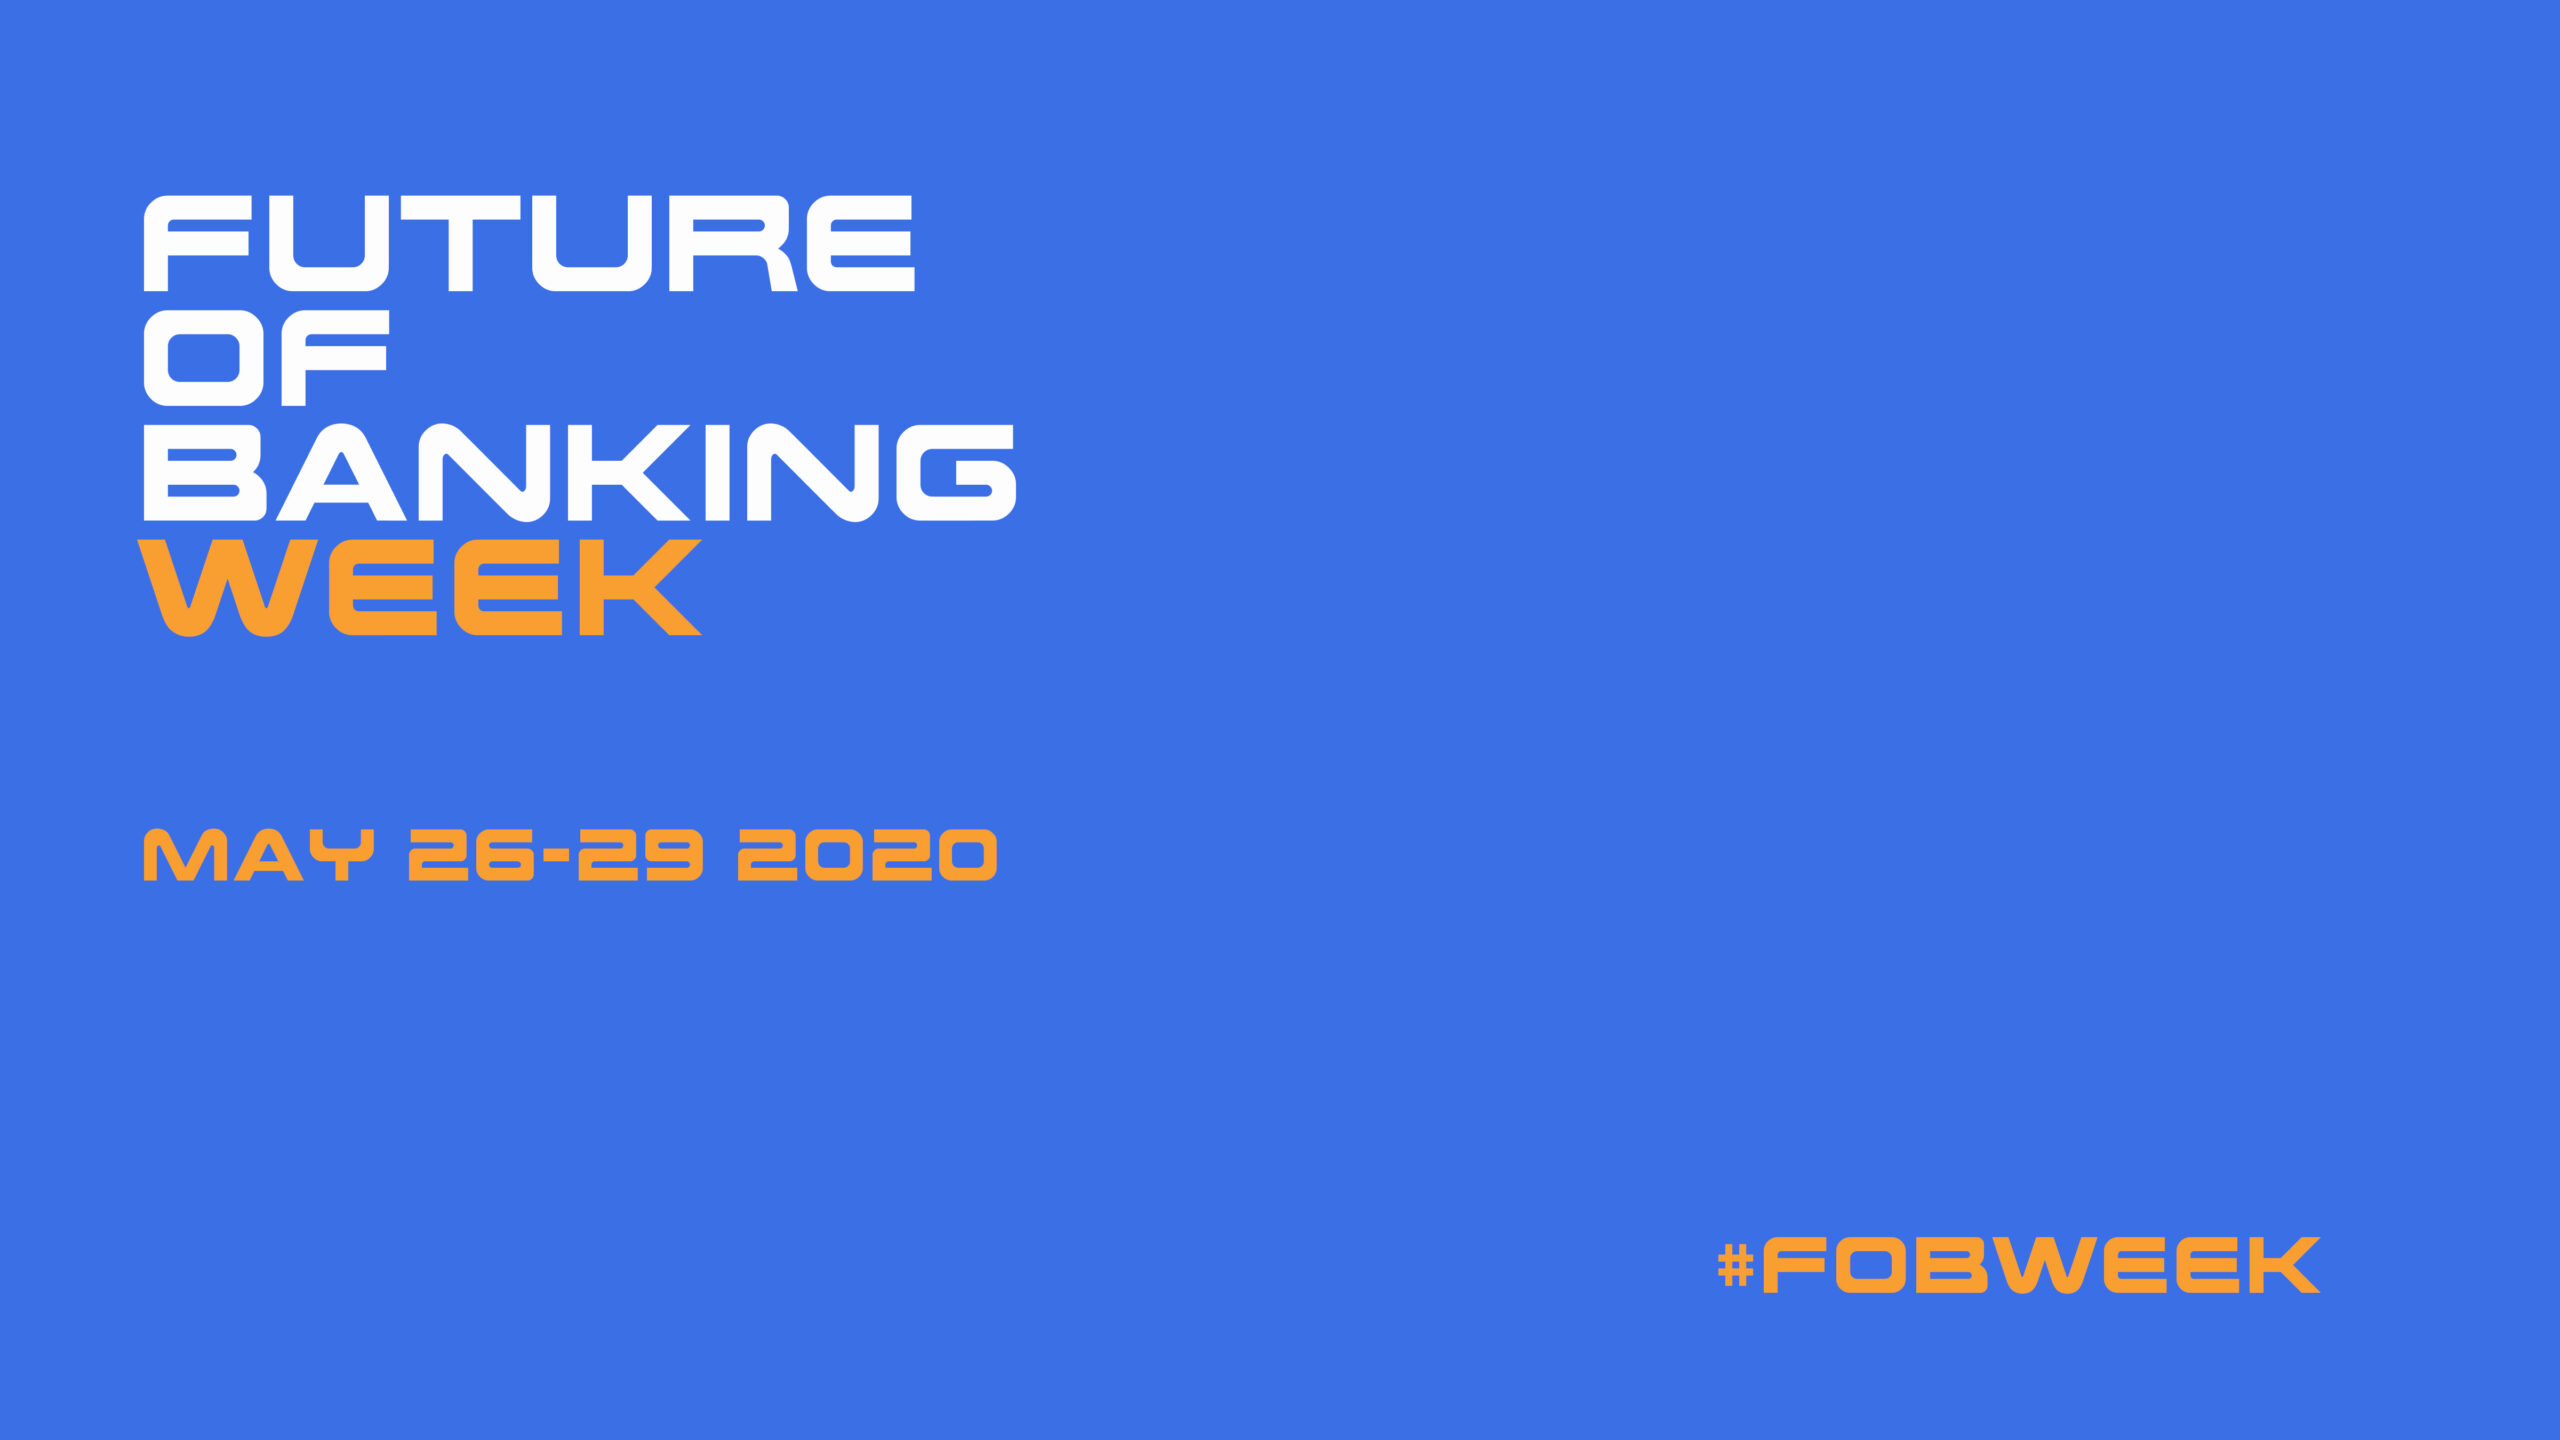 The Future of Banking Week